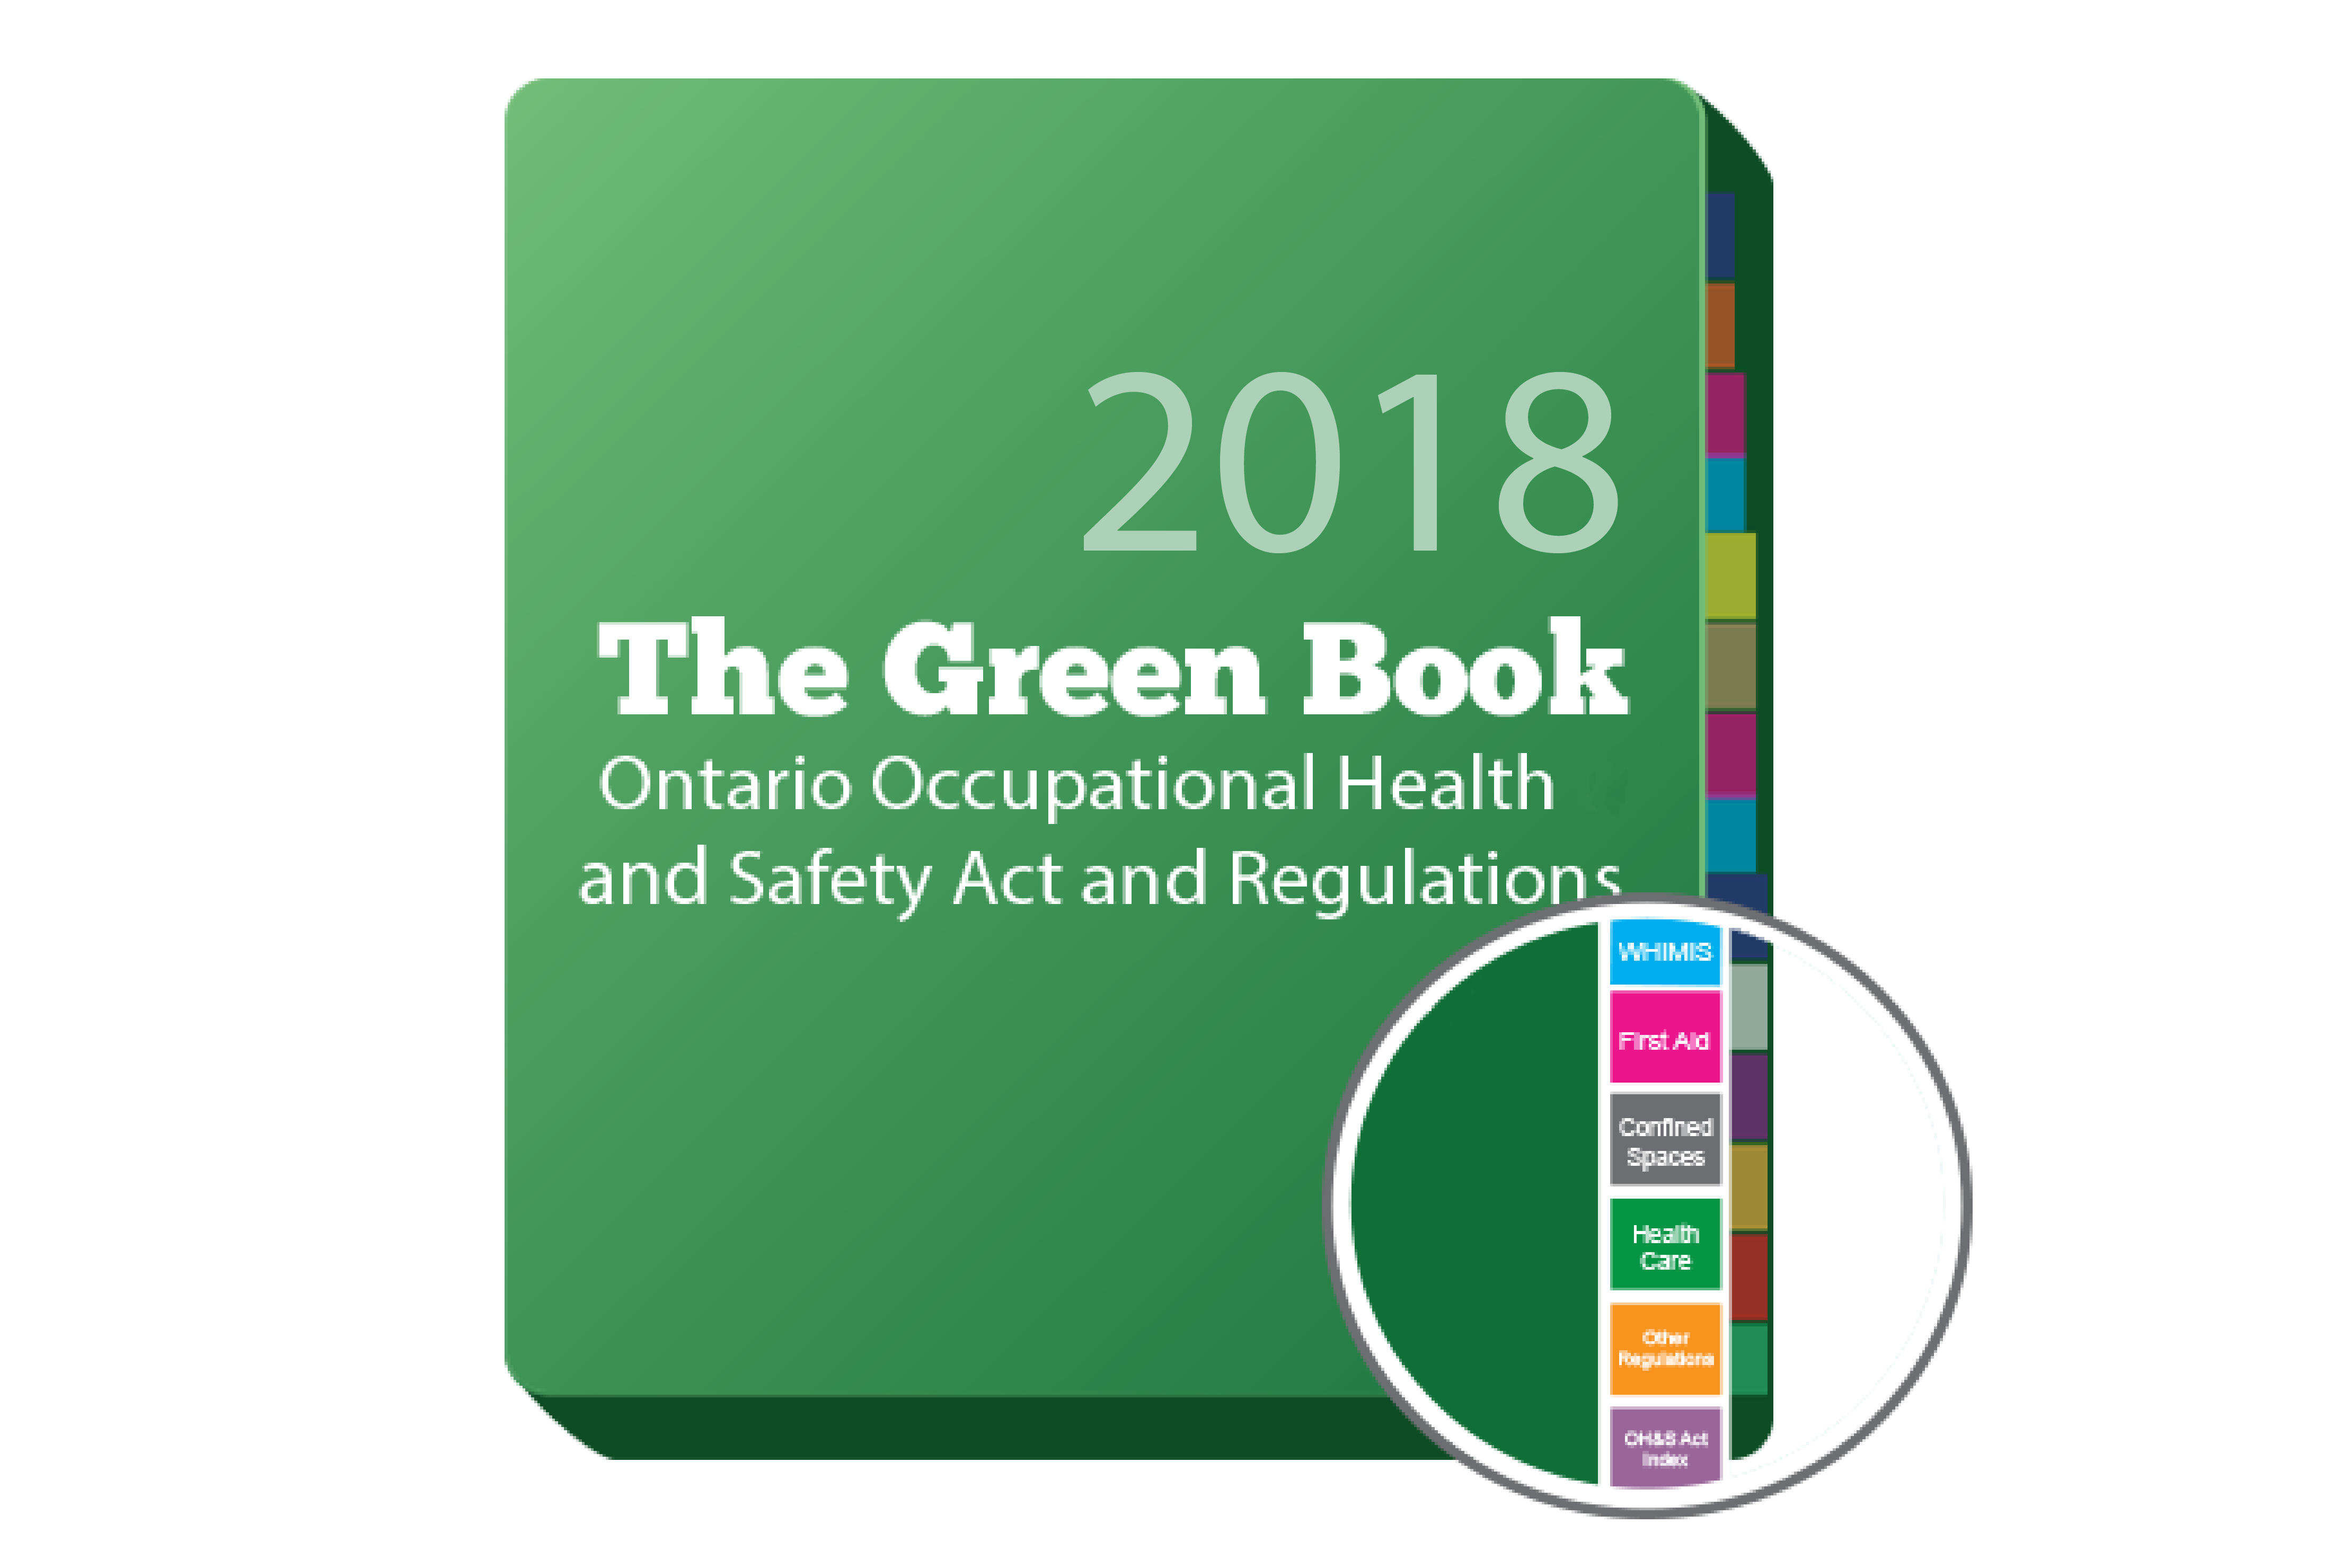 2018 Green Book (Ontario Occupational Health and Safety Act and  Regulations) - OSG